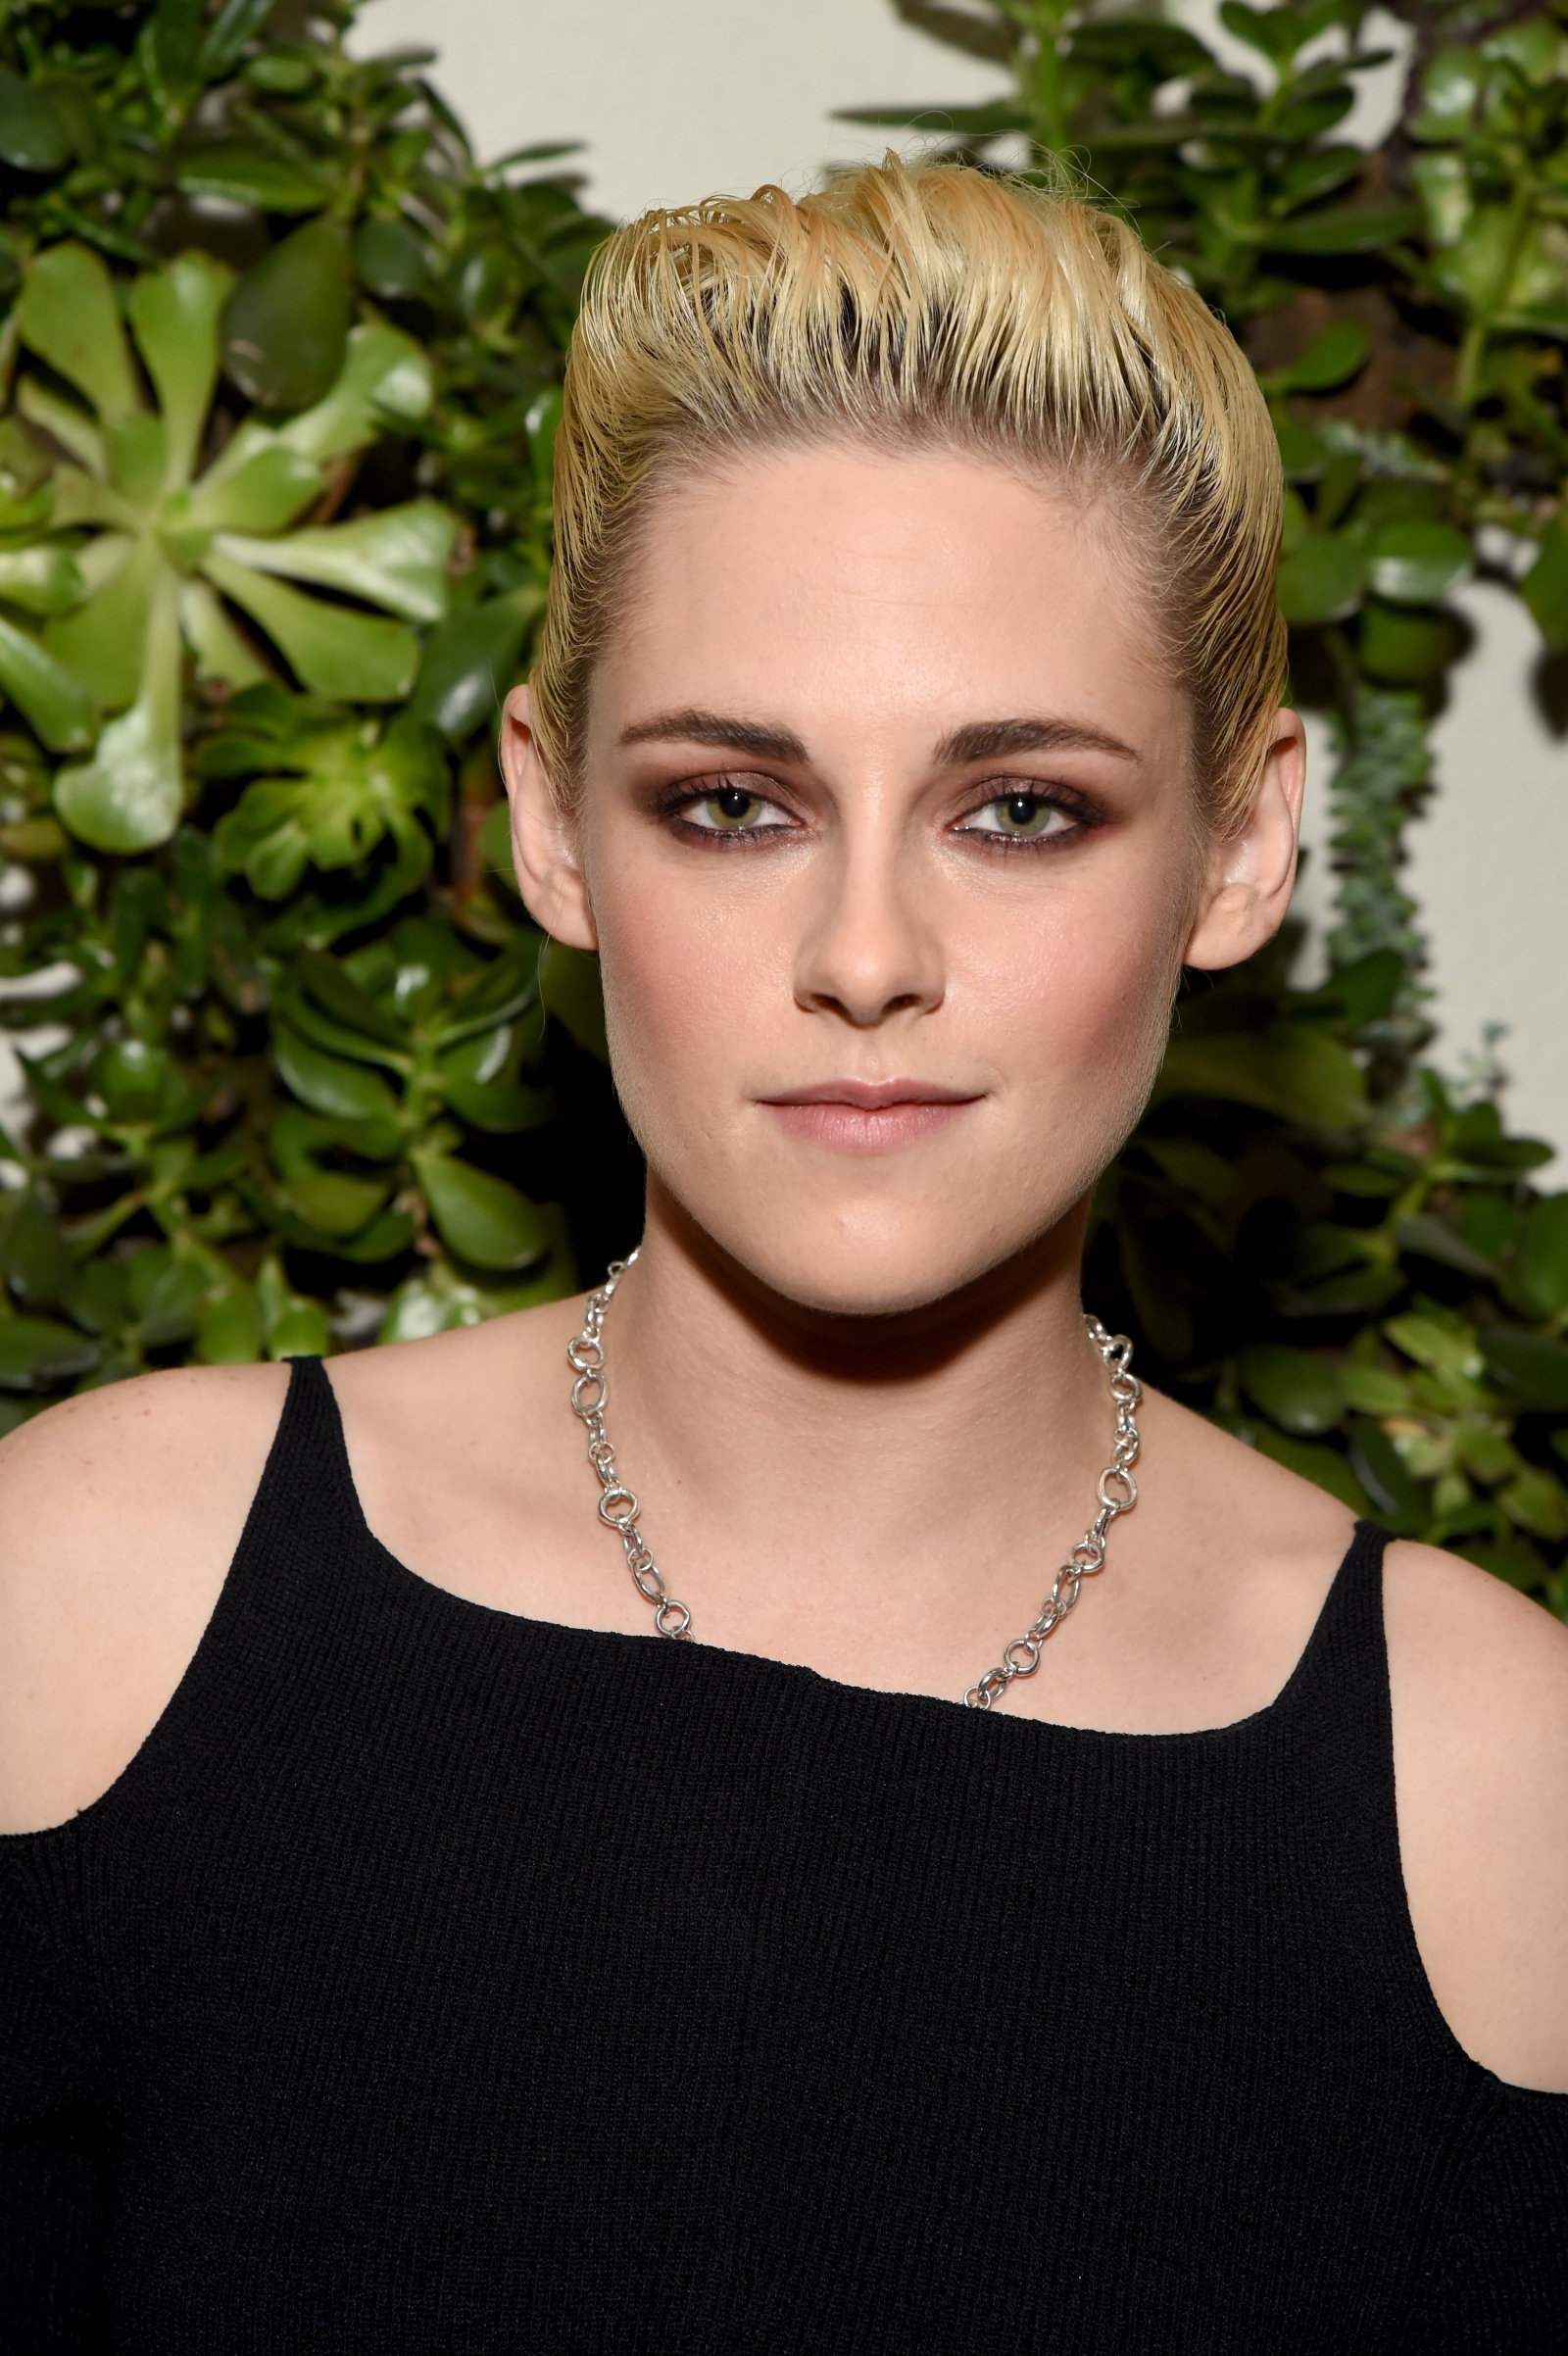 robert pattinson thinks kristen stewart pulled off 'sexy' moves in